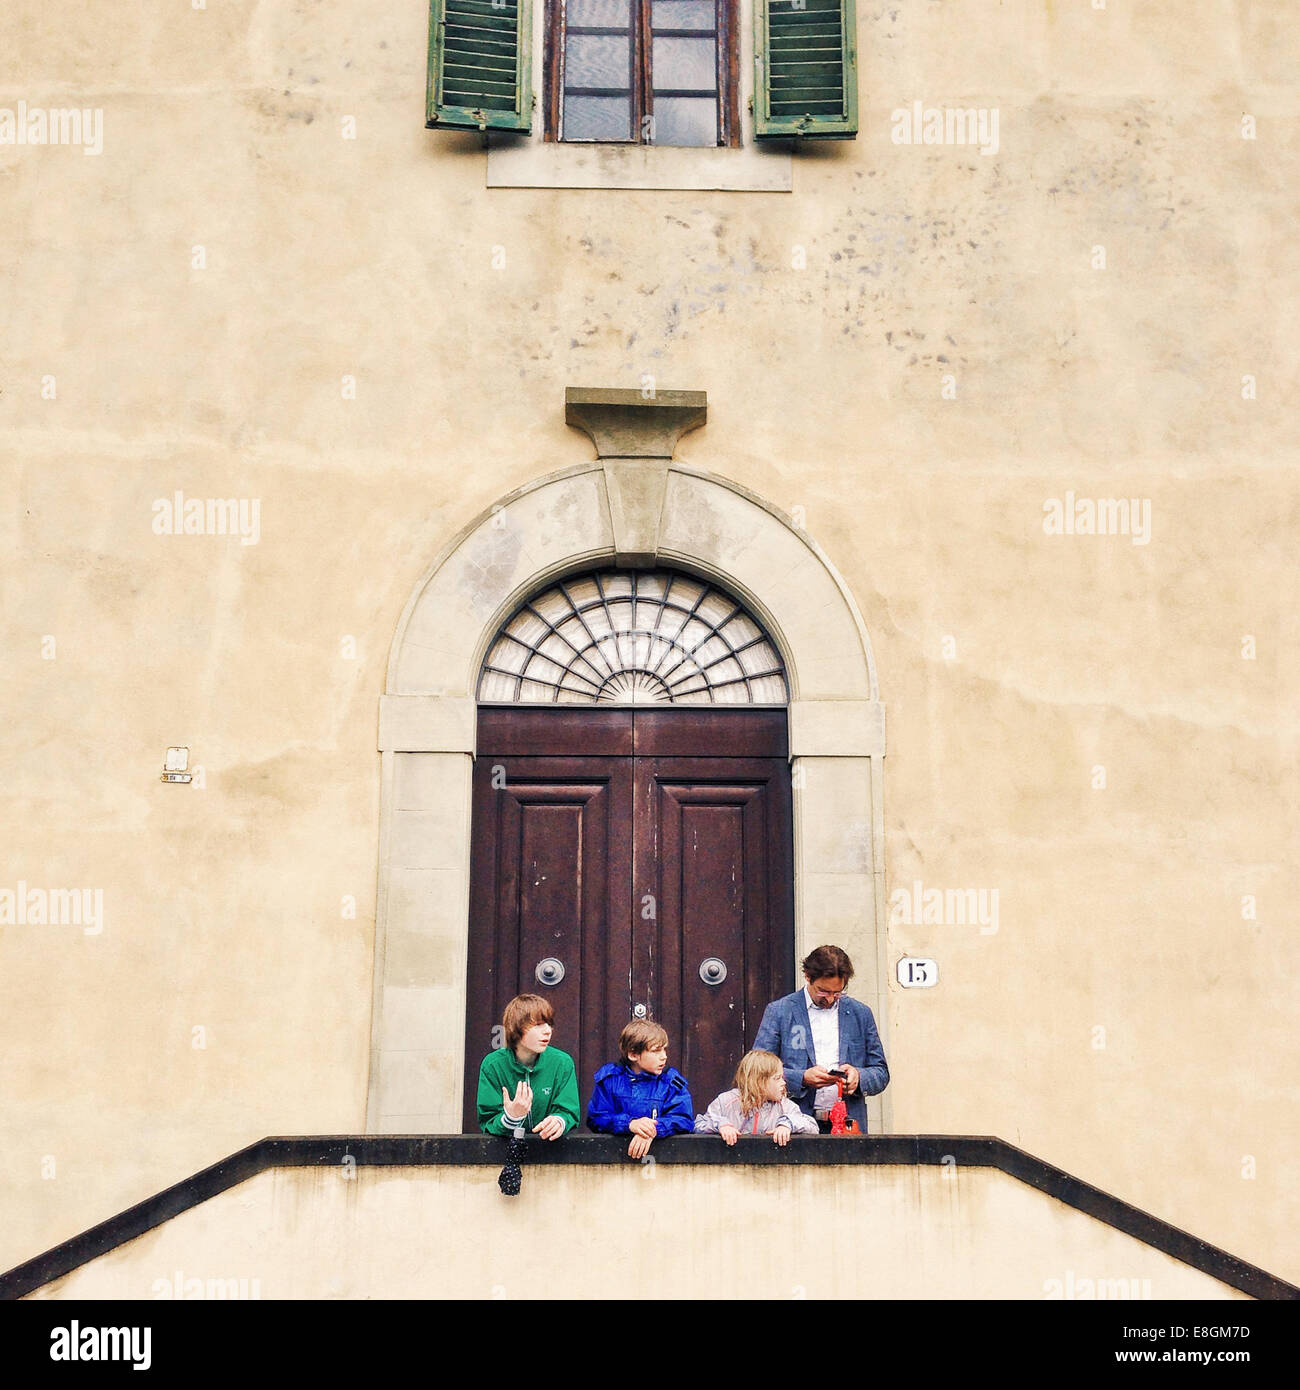 Italy, Florence, Father with three kids (10-11, 12-13) standing in front of building - Stock Image